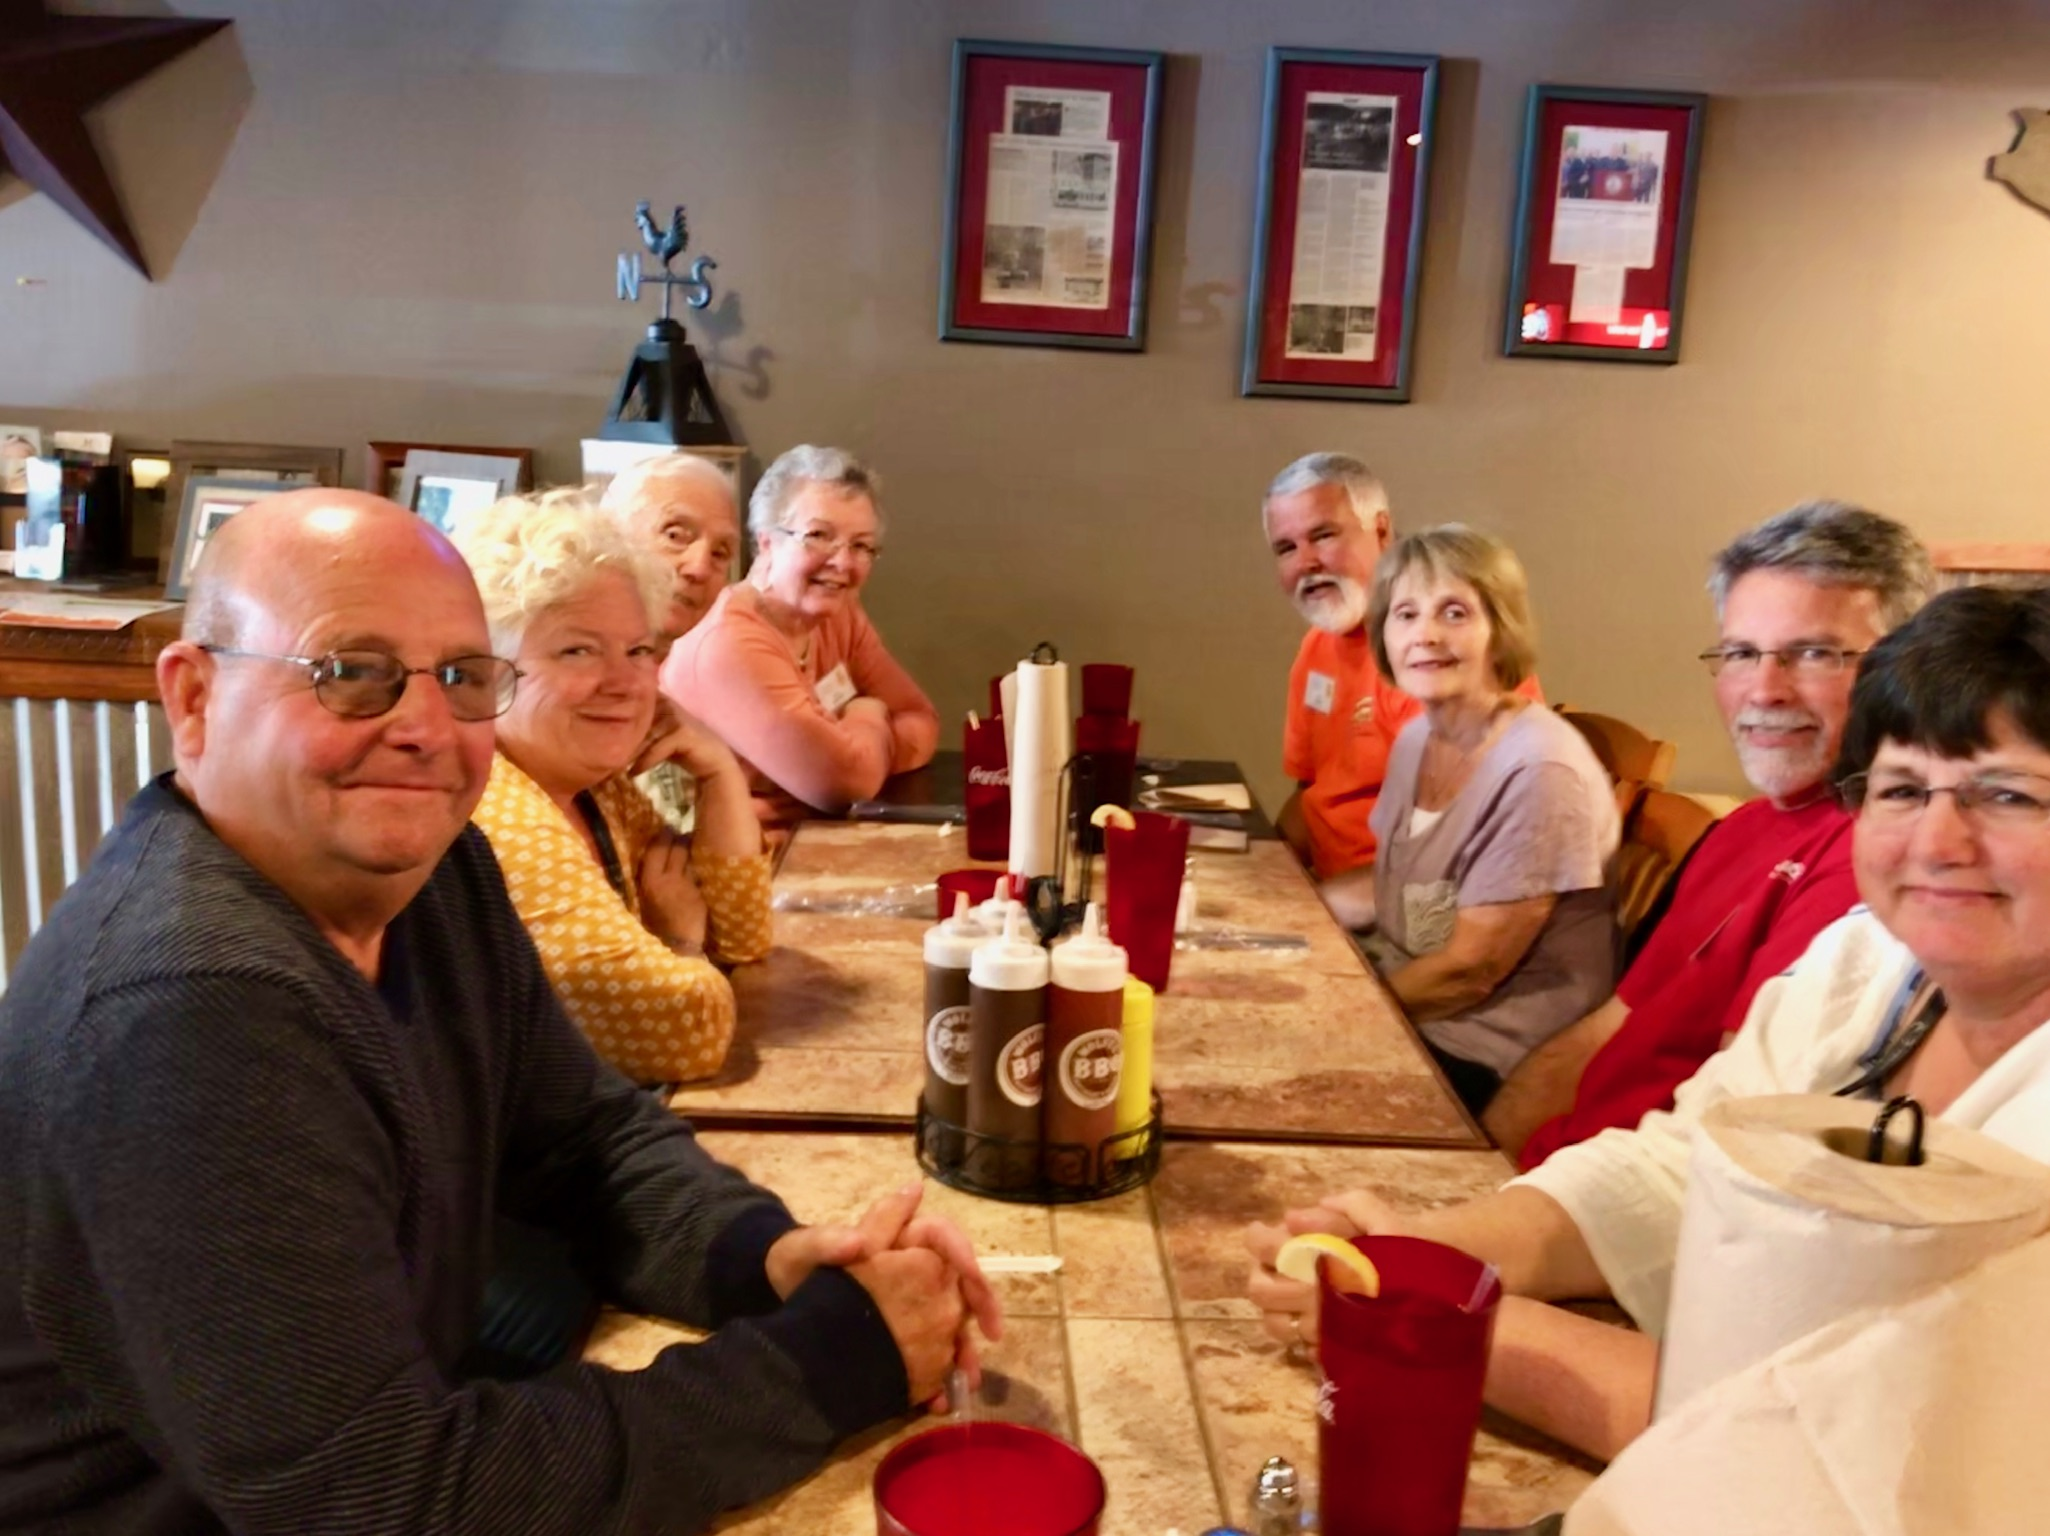 Lunch at Wolfe's BBQ in Marion, VA. Clockwise from left: Tom Hickle, Tena Hough, Bob Horneck, Lana Horneck, Tim Beard, Cindy Beard, Lee Hough, Tammy Hickle.